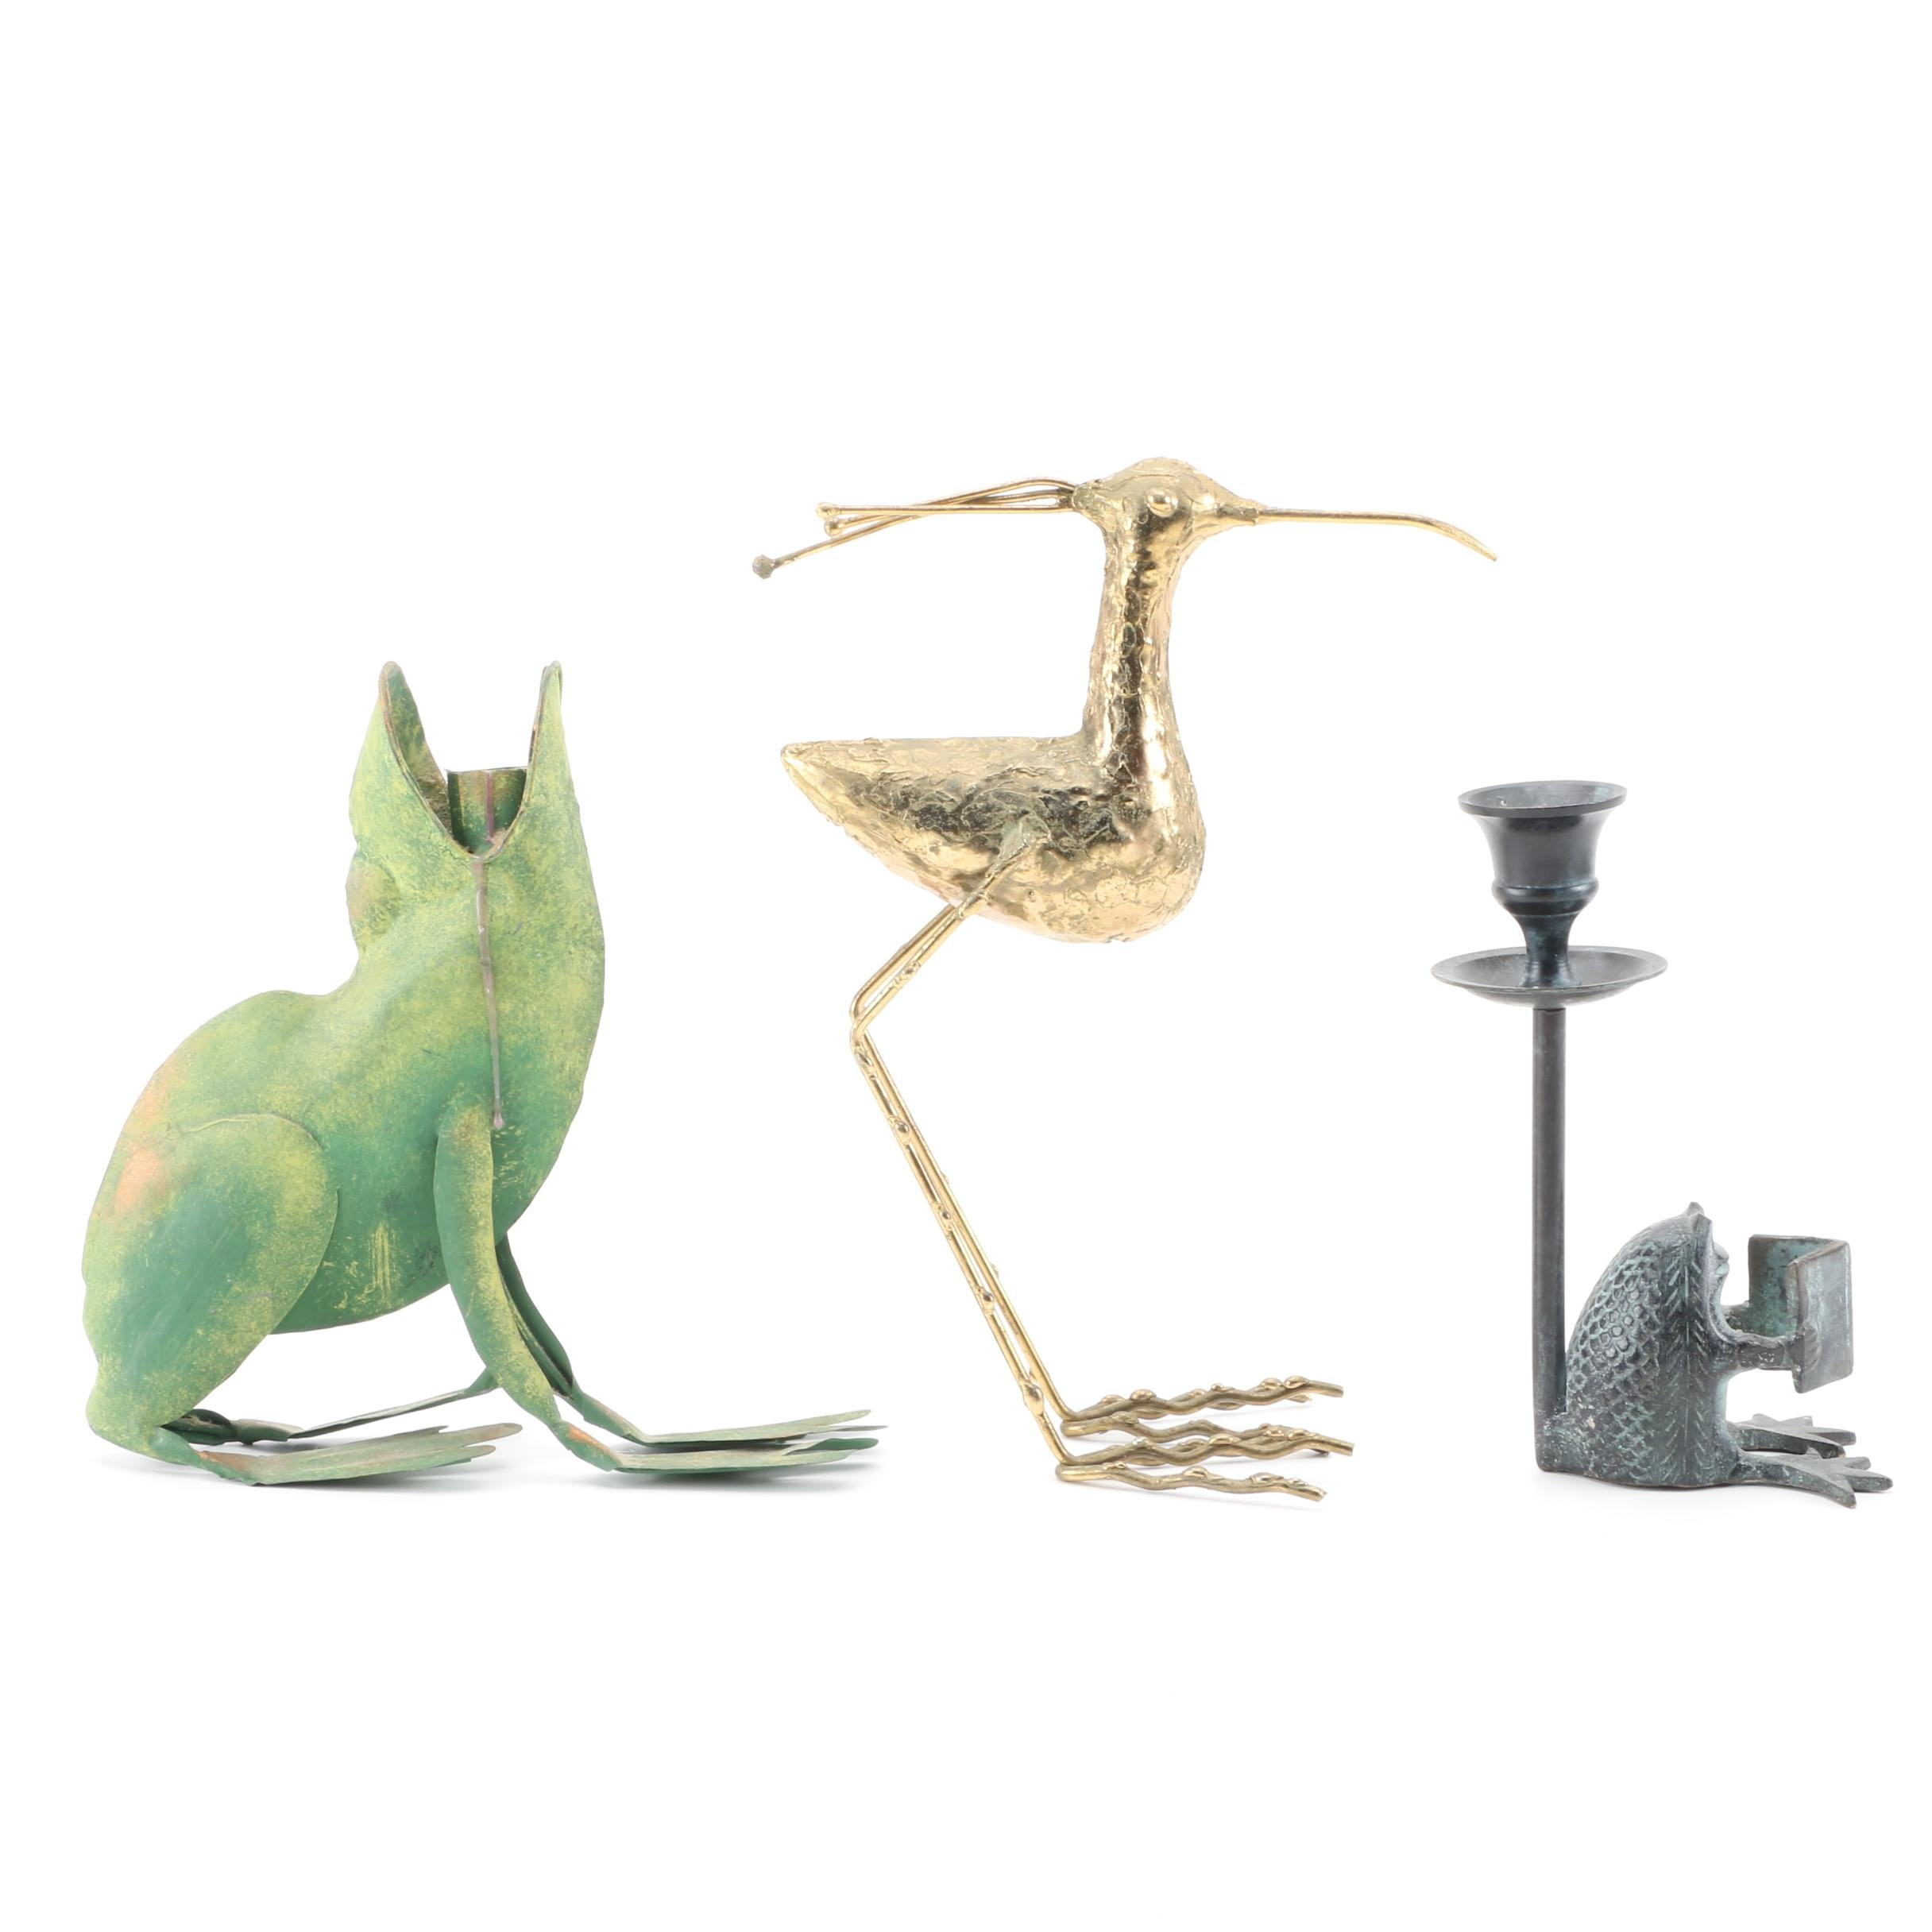 Pair of Frog Candle Holders With a Bird Figurine